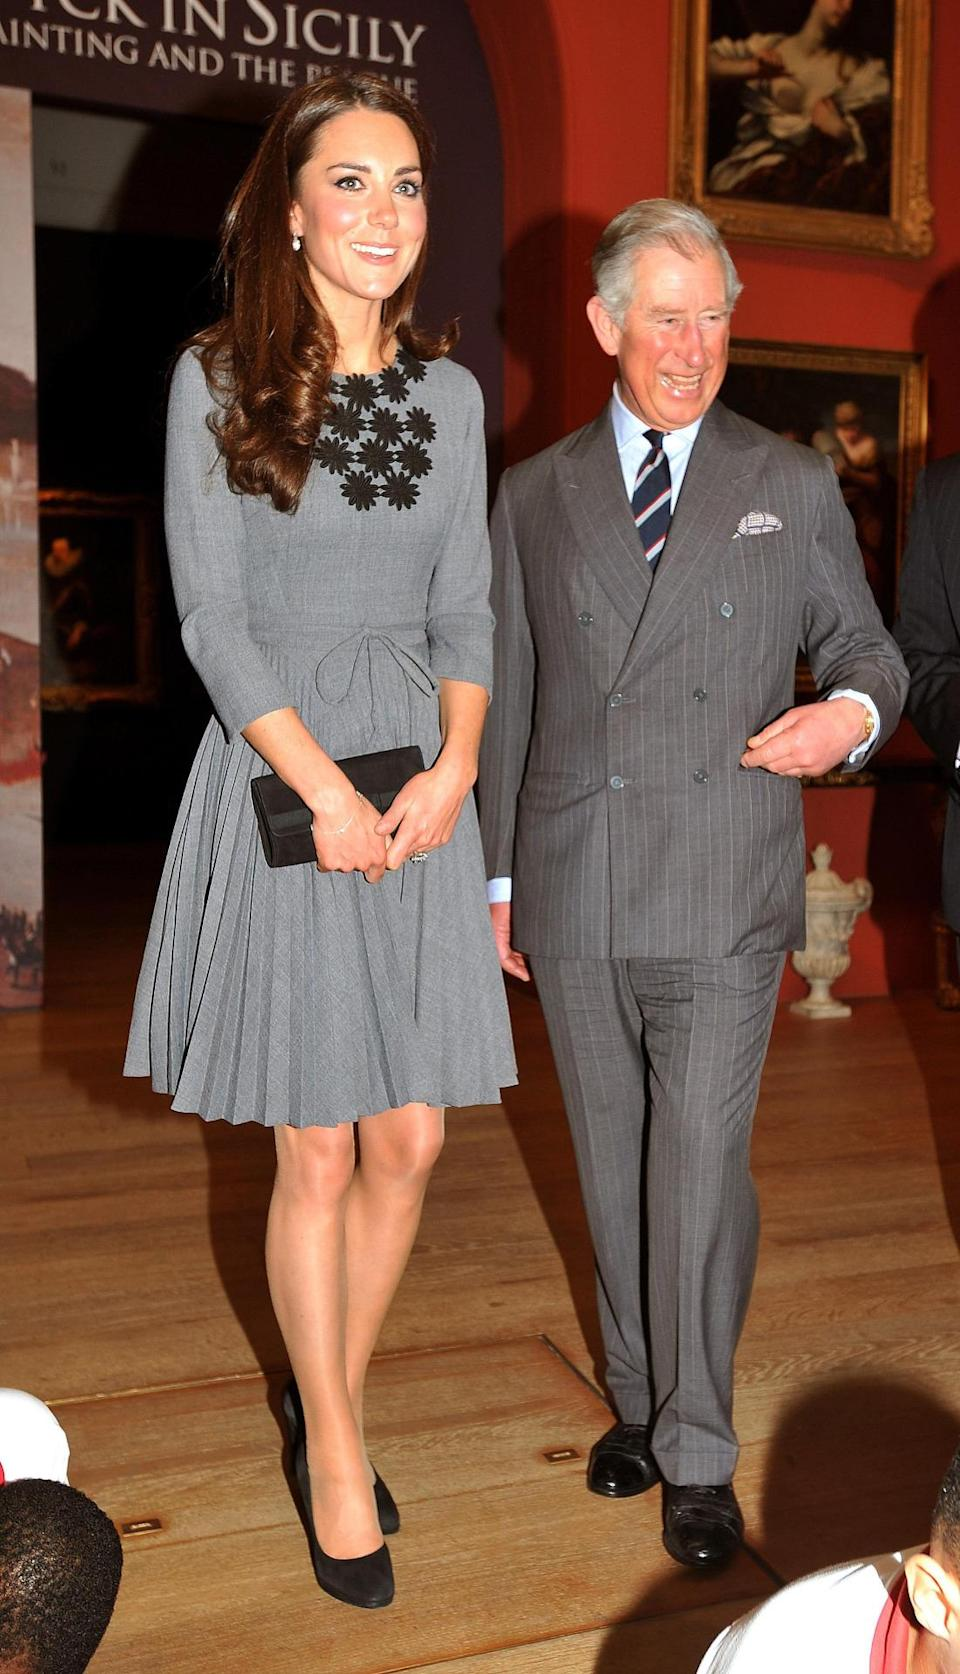 <p>The Duchess donned a chic grey dress by Orla Kiely for a charity visit. </p><p><i>[Photo: PA]</i></p>